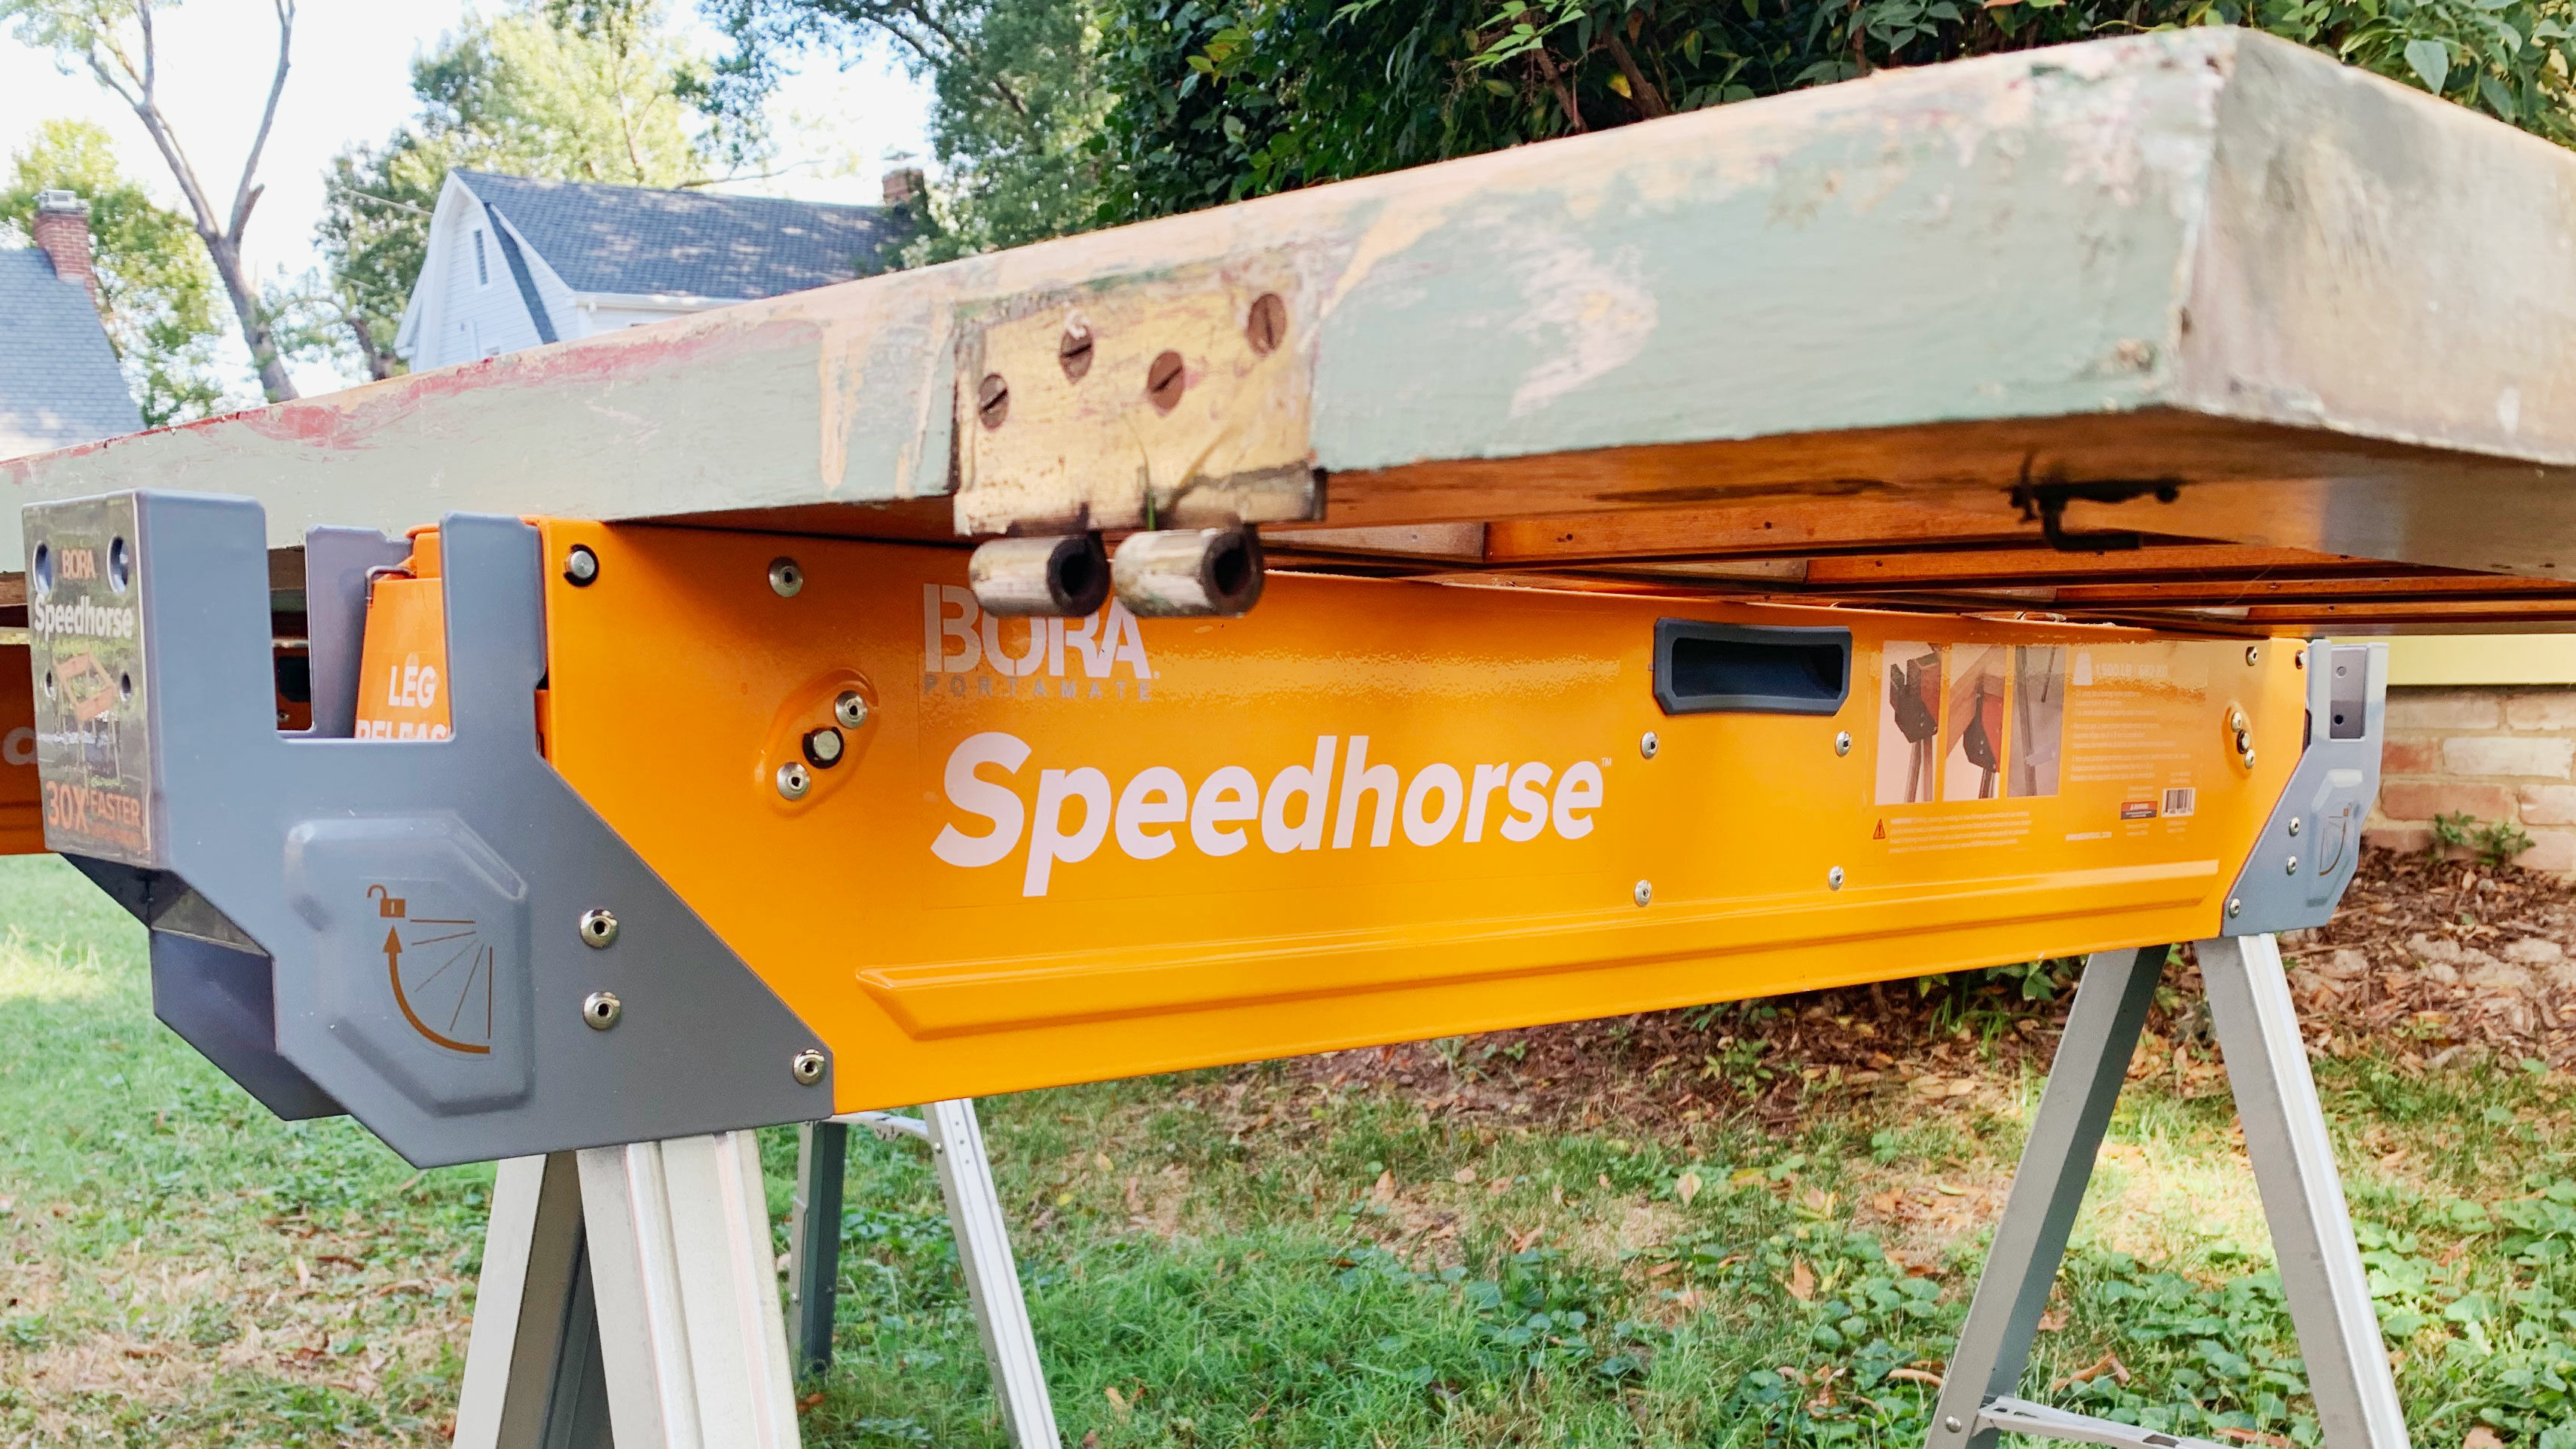 Bora Speedhorse Saw Horses Are Off To The Races